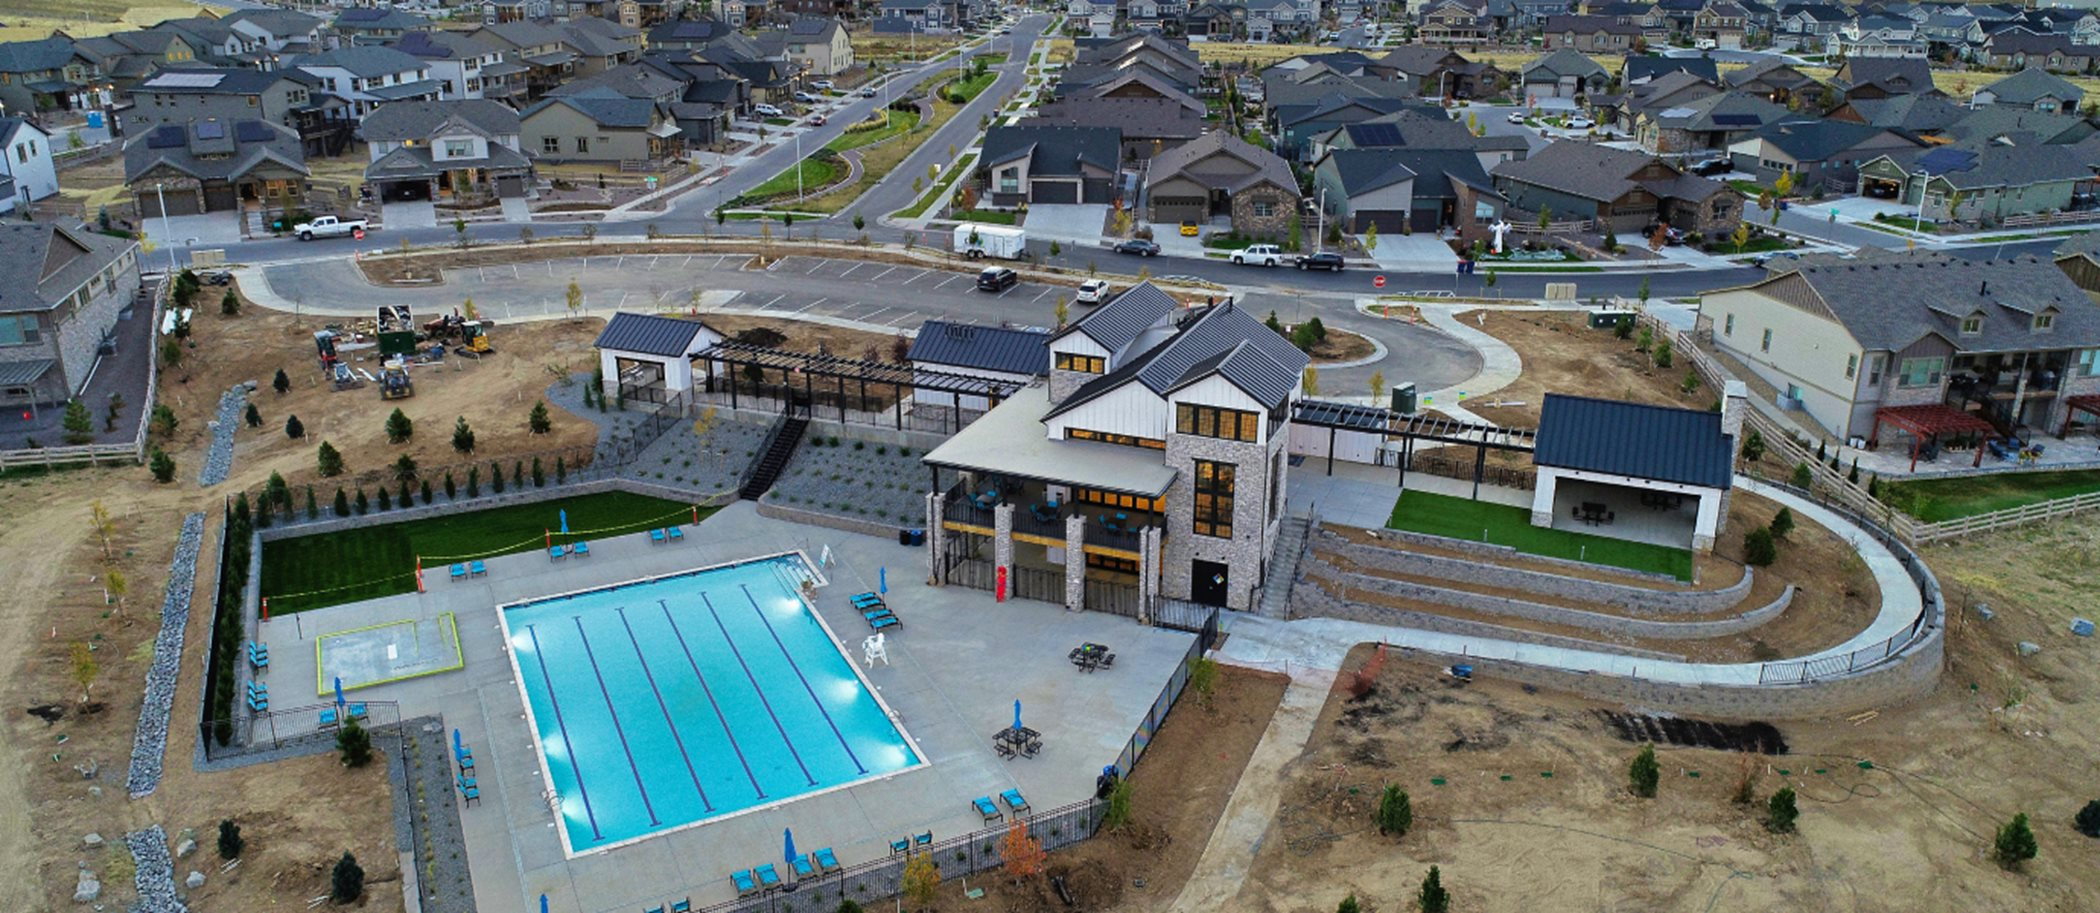 Sterling Ranch residents may enjoy the picnic areas, lakes, campsites and other amenities